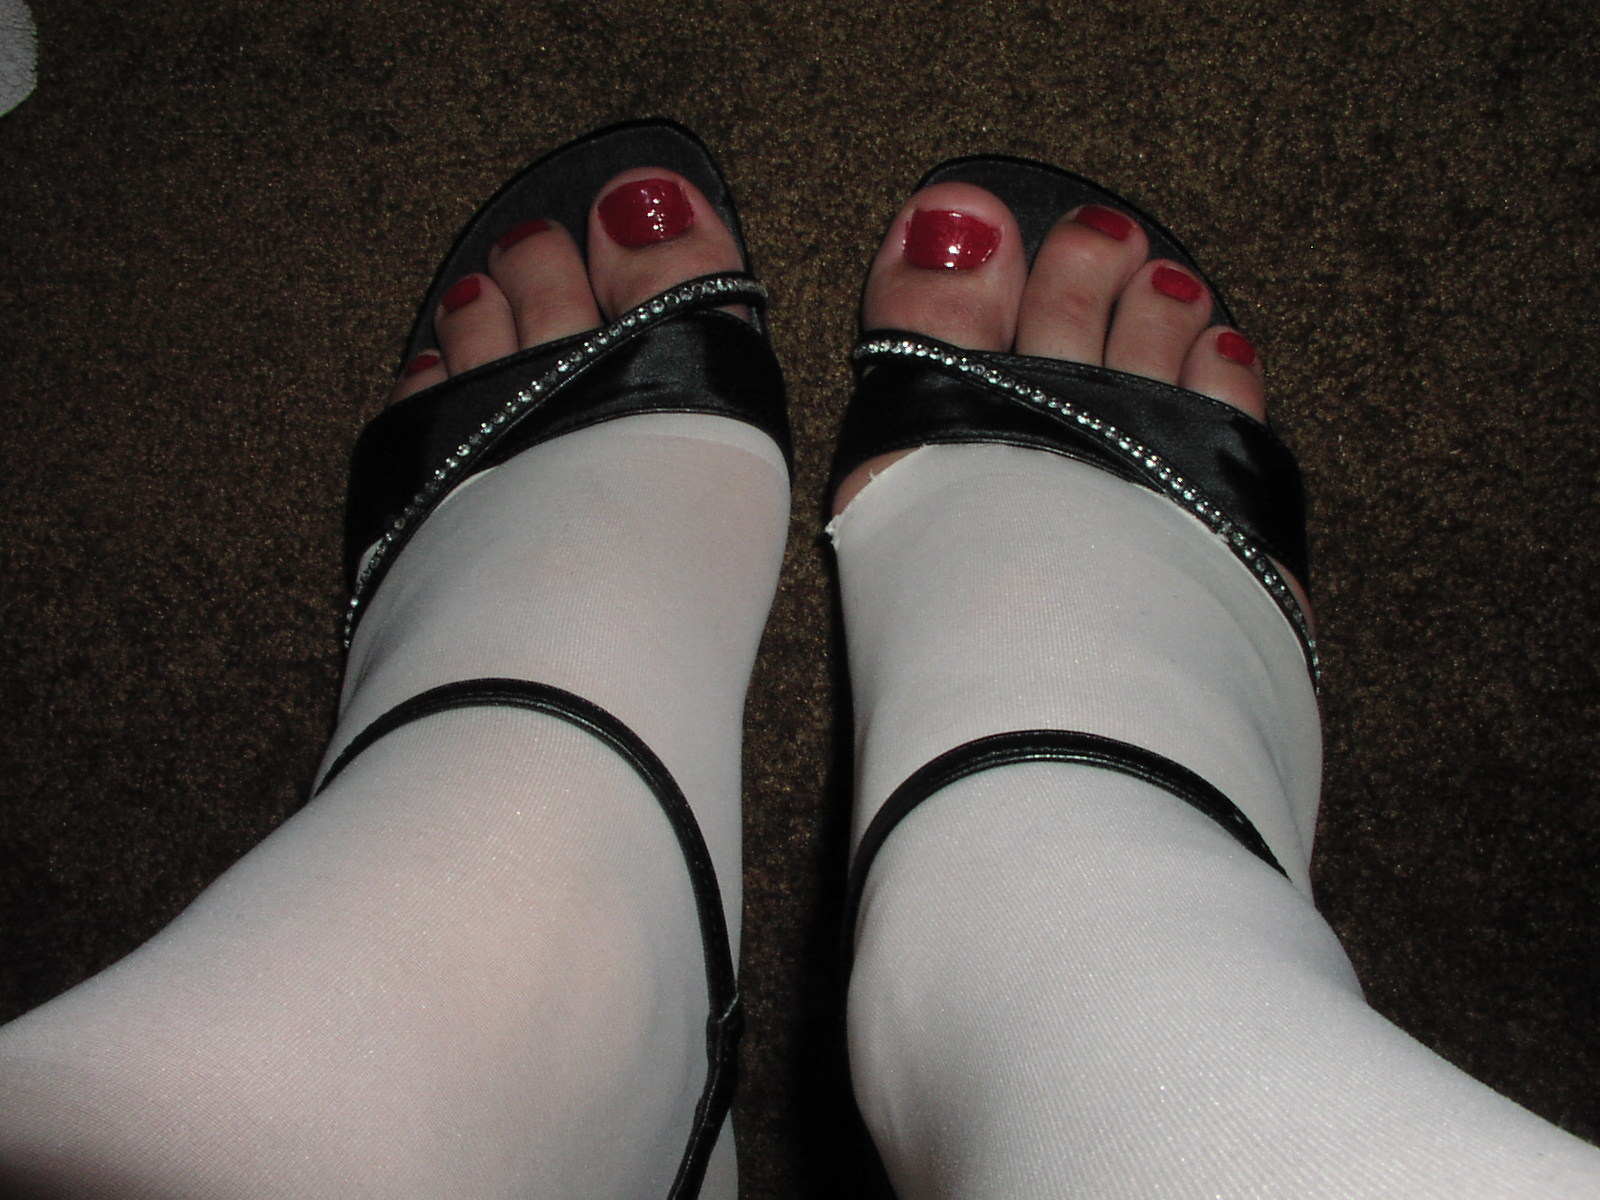 Pretty toes for sucking